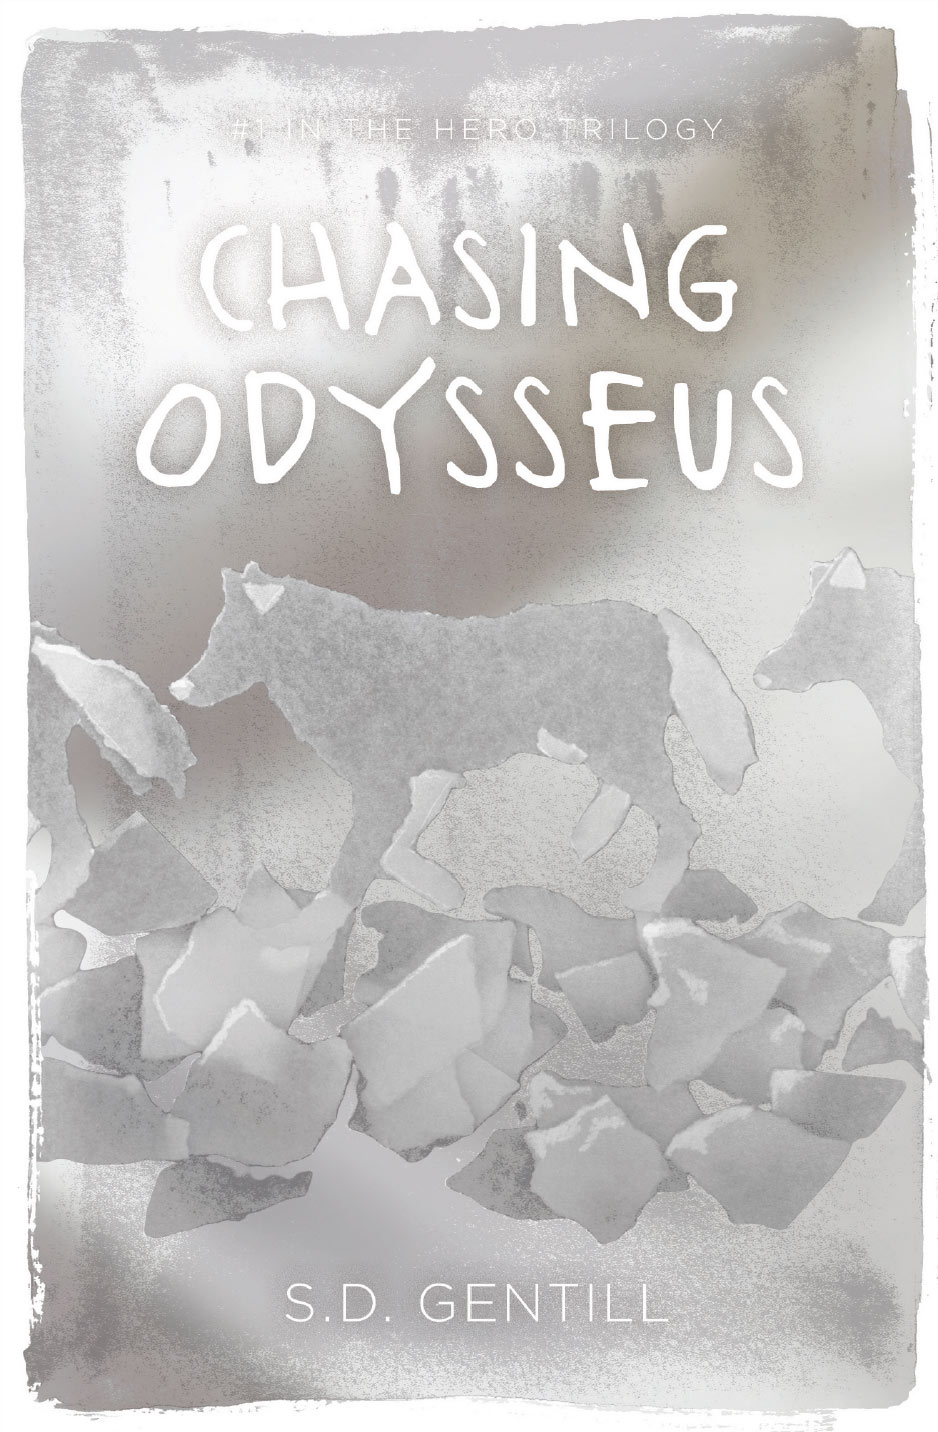 Review: 'Chasing Odysseus' (S.D. Gentill)